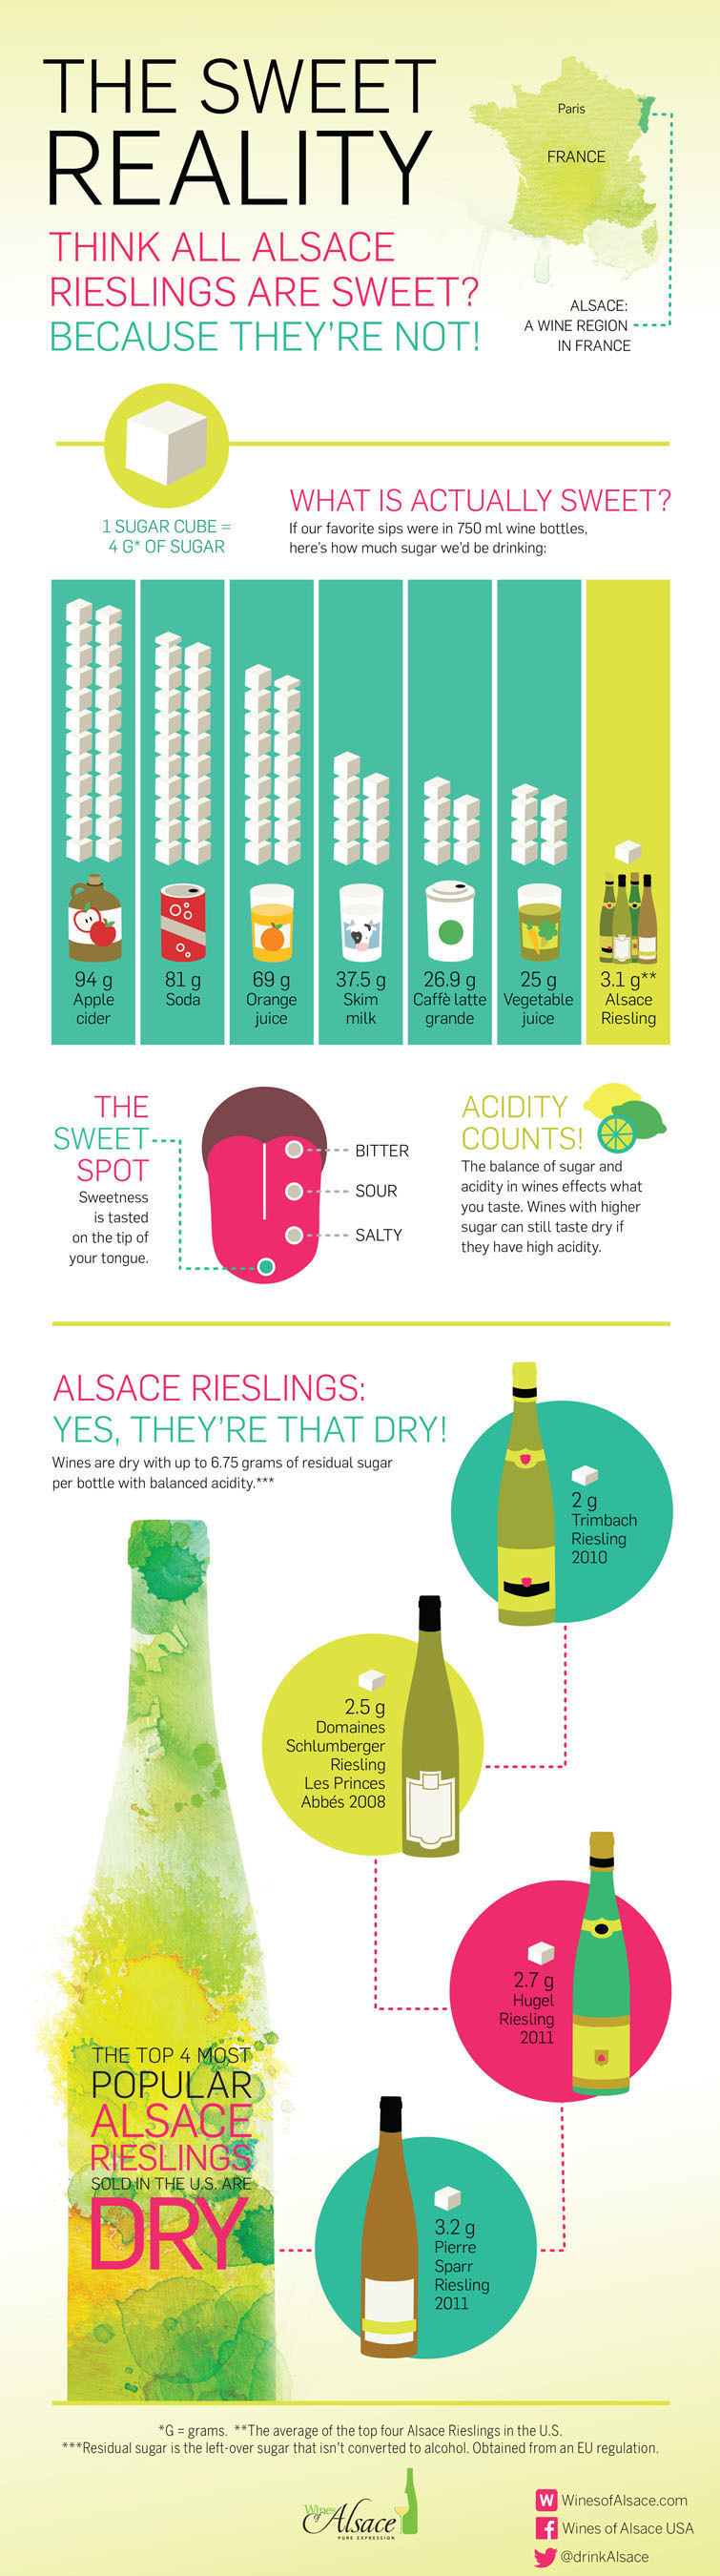 Think all Alsace Rieslings are sweet? Because they're not! Riesling is still perceived as sweet by many ...